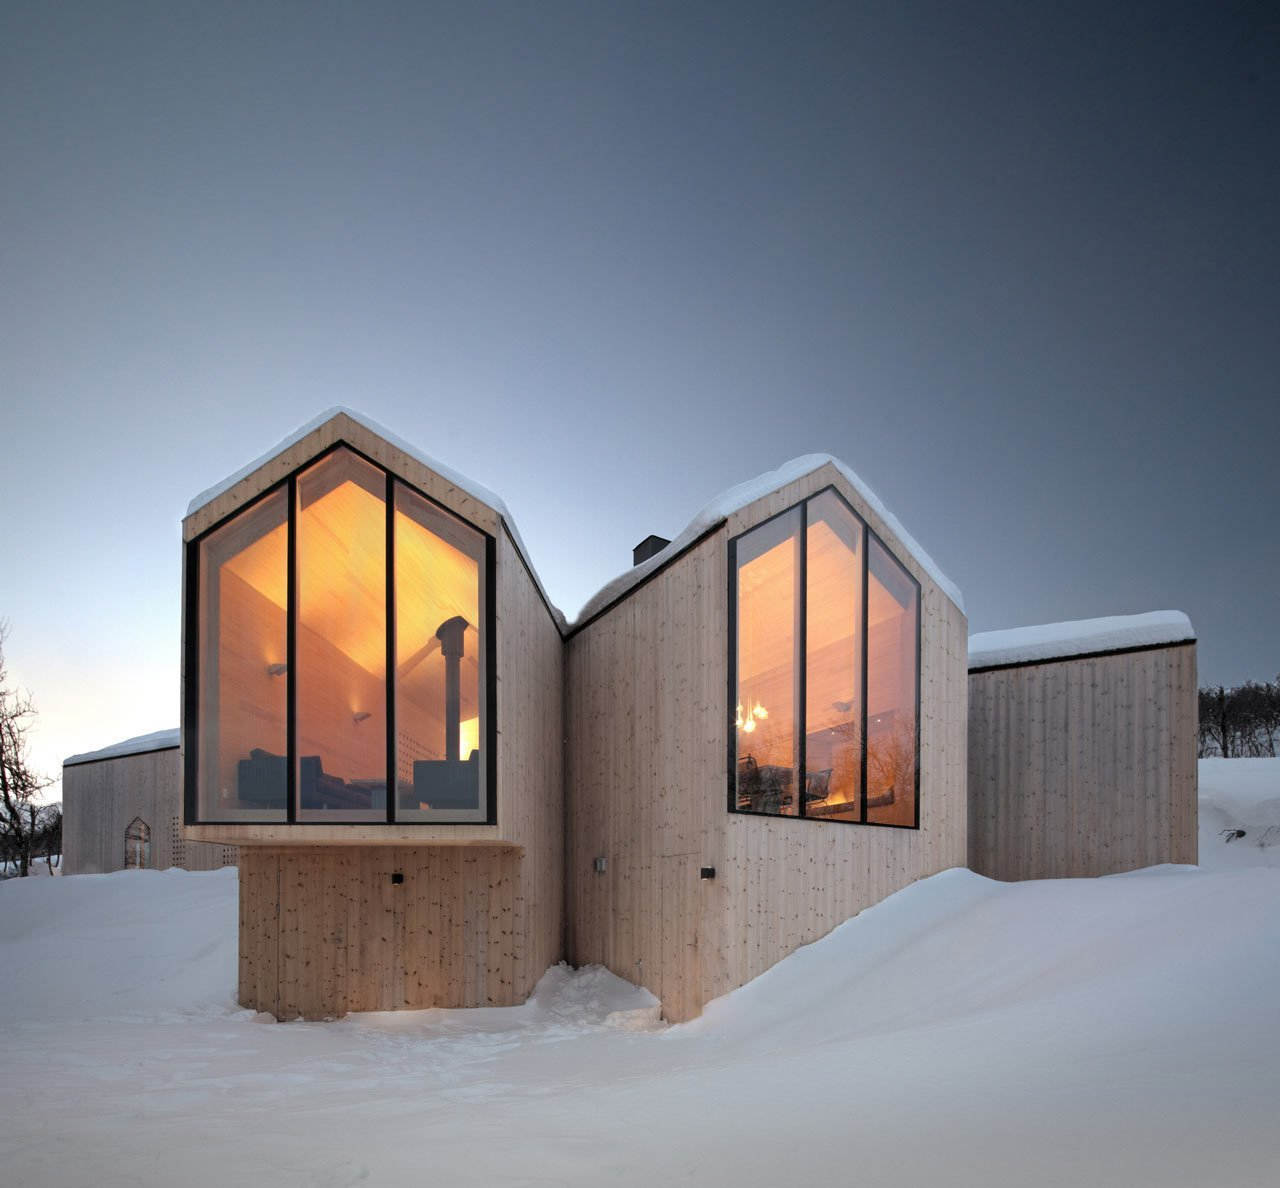 Exterior, House Building Type, Metal Roof Material, Wood Siding Material, and Gable RoofLine Designed by Reiulf Ramstad Arkitekter for a family of four, the Split View Mountain Lodge is a holiday home near the village of Geilo, Norway. The main volume splits out to form additional annexes that frame individual views of the surrounding mountains.